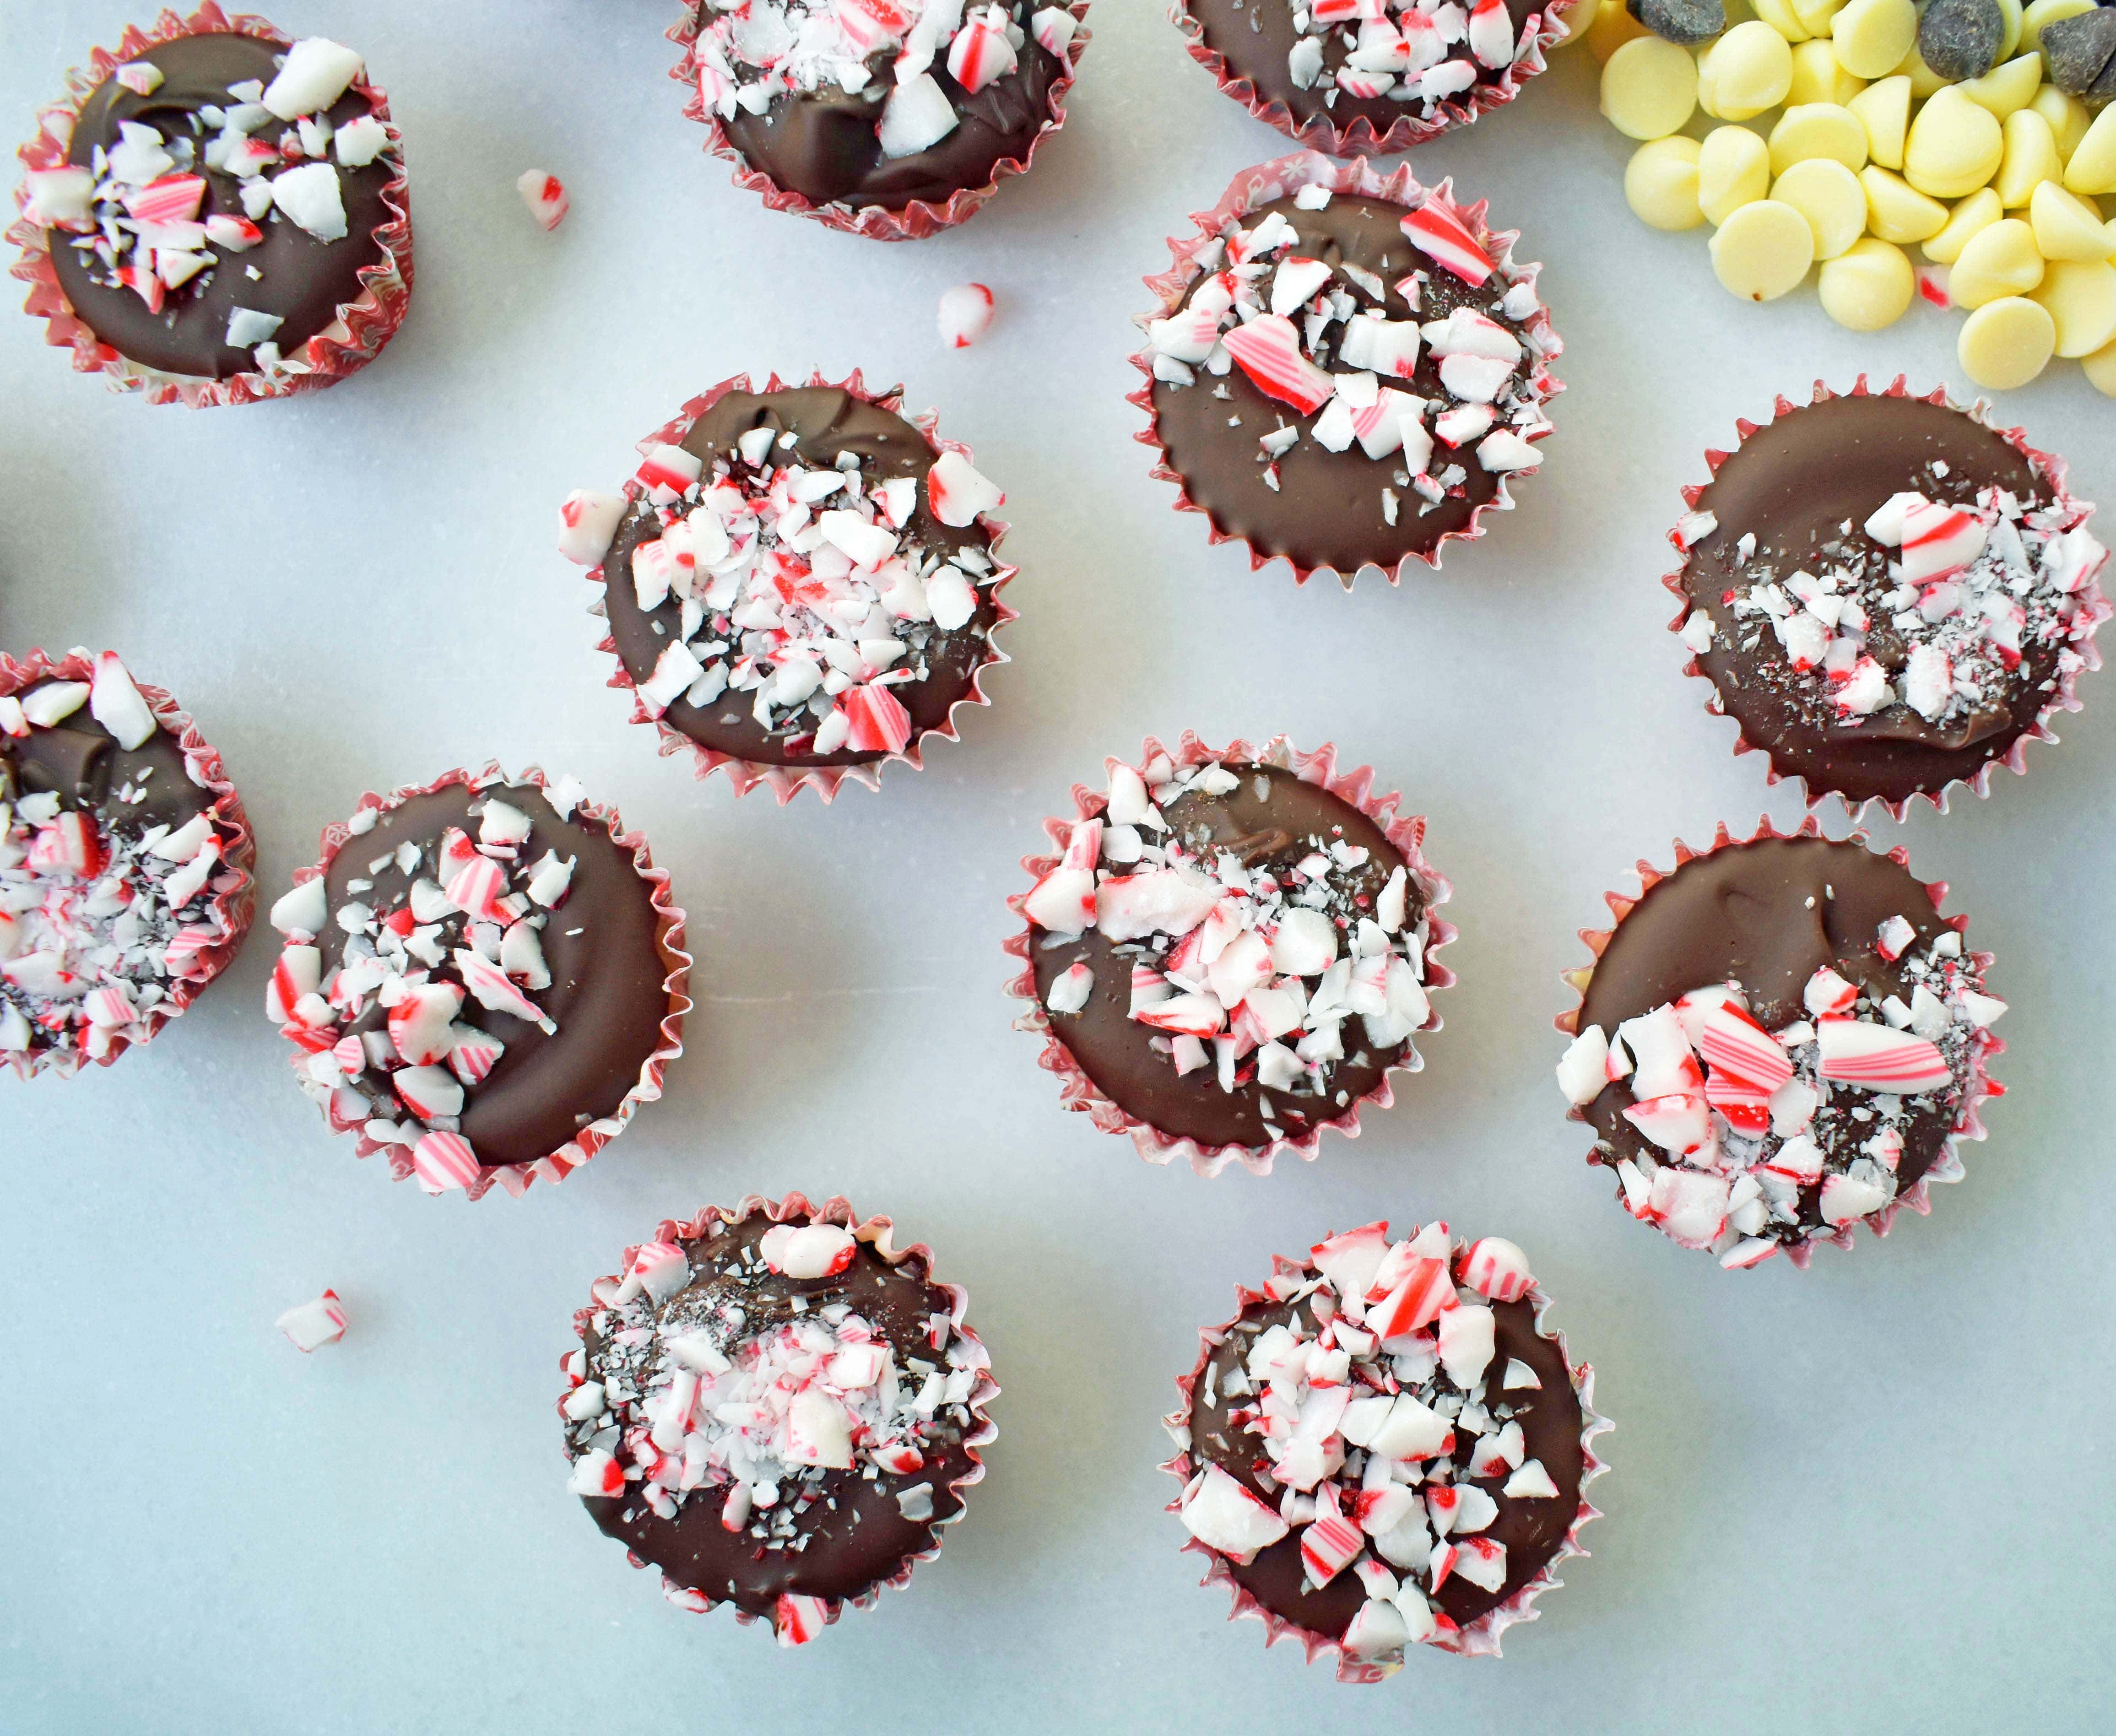 Peppermint Bark Cookie Dough Cups by Modern Honey. Egg Free Chocolate Chip Cookie Dough layered with white chocolate and semisweet chocolate and topped with crushed candy canes.